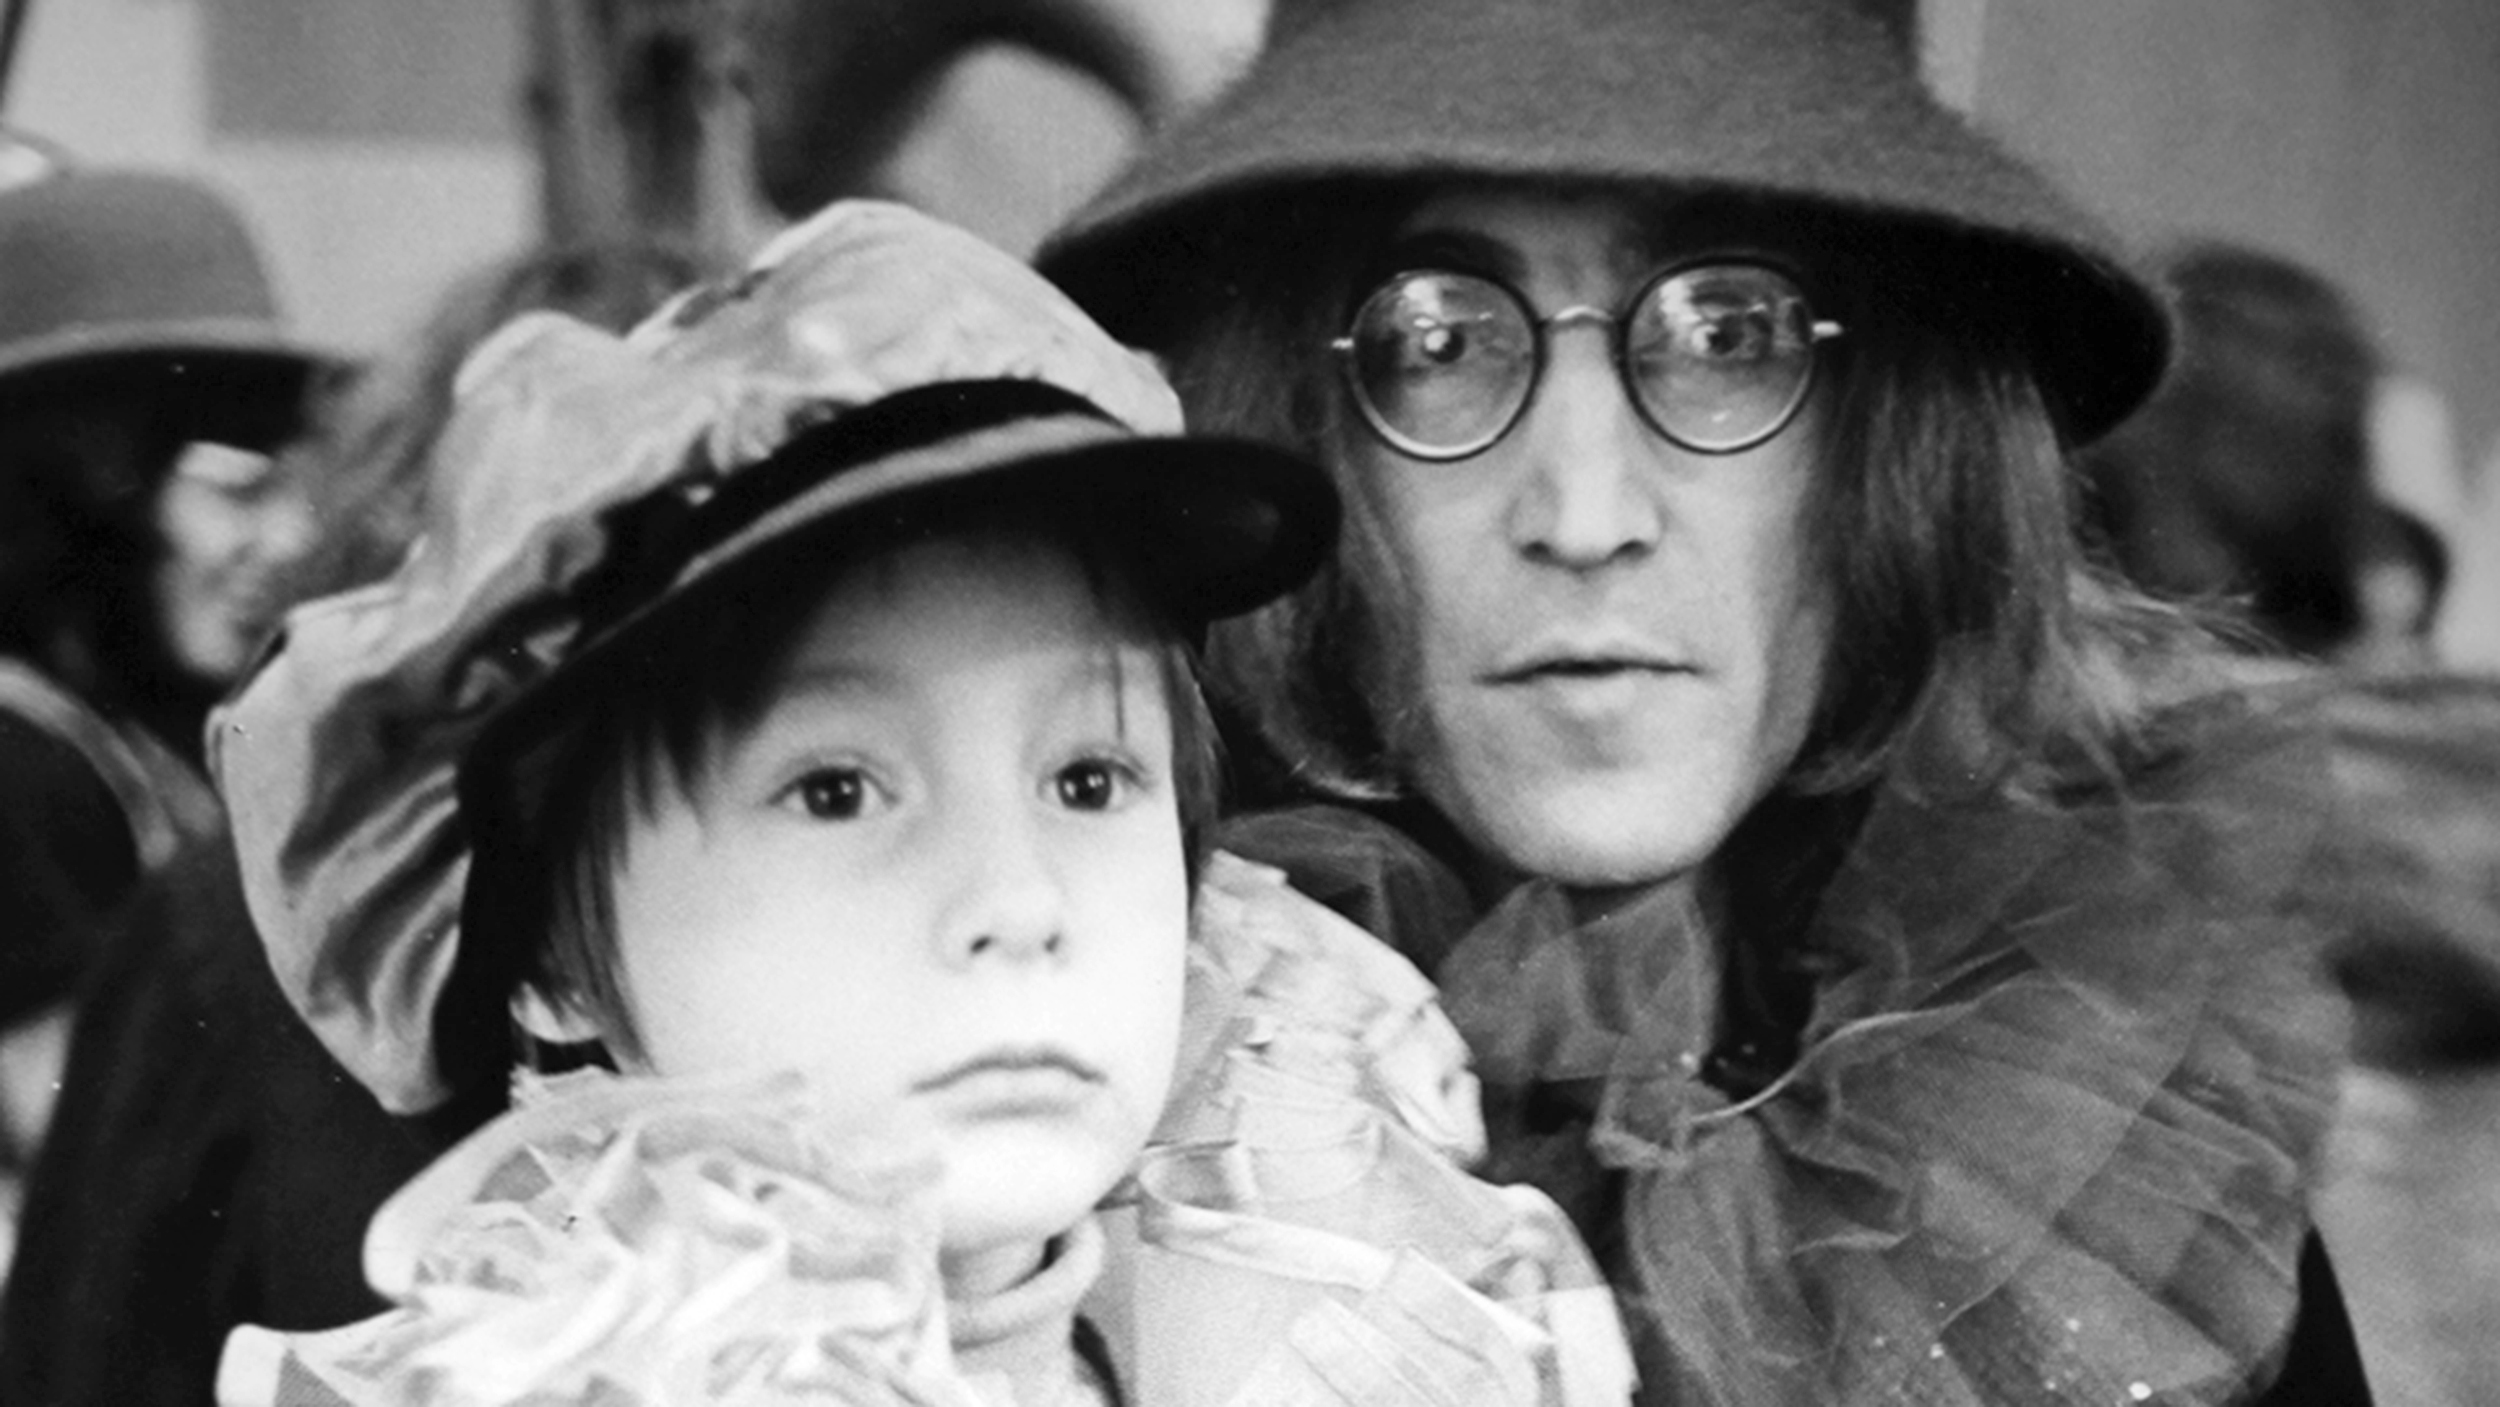 Julian Lennon On The Sign He Got From Dad John Lennon